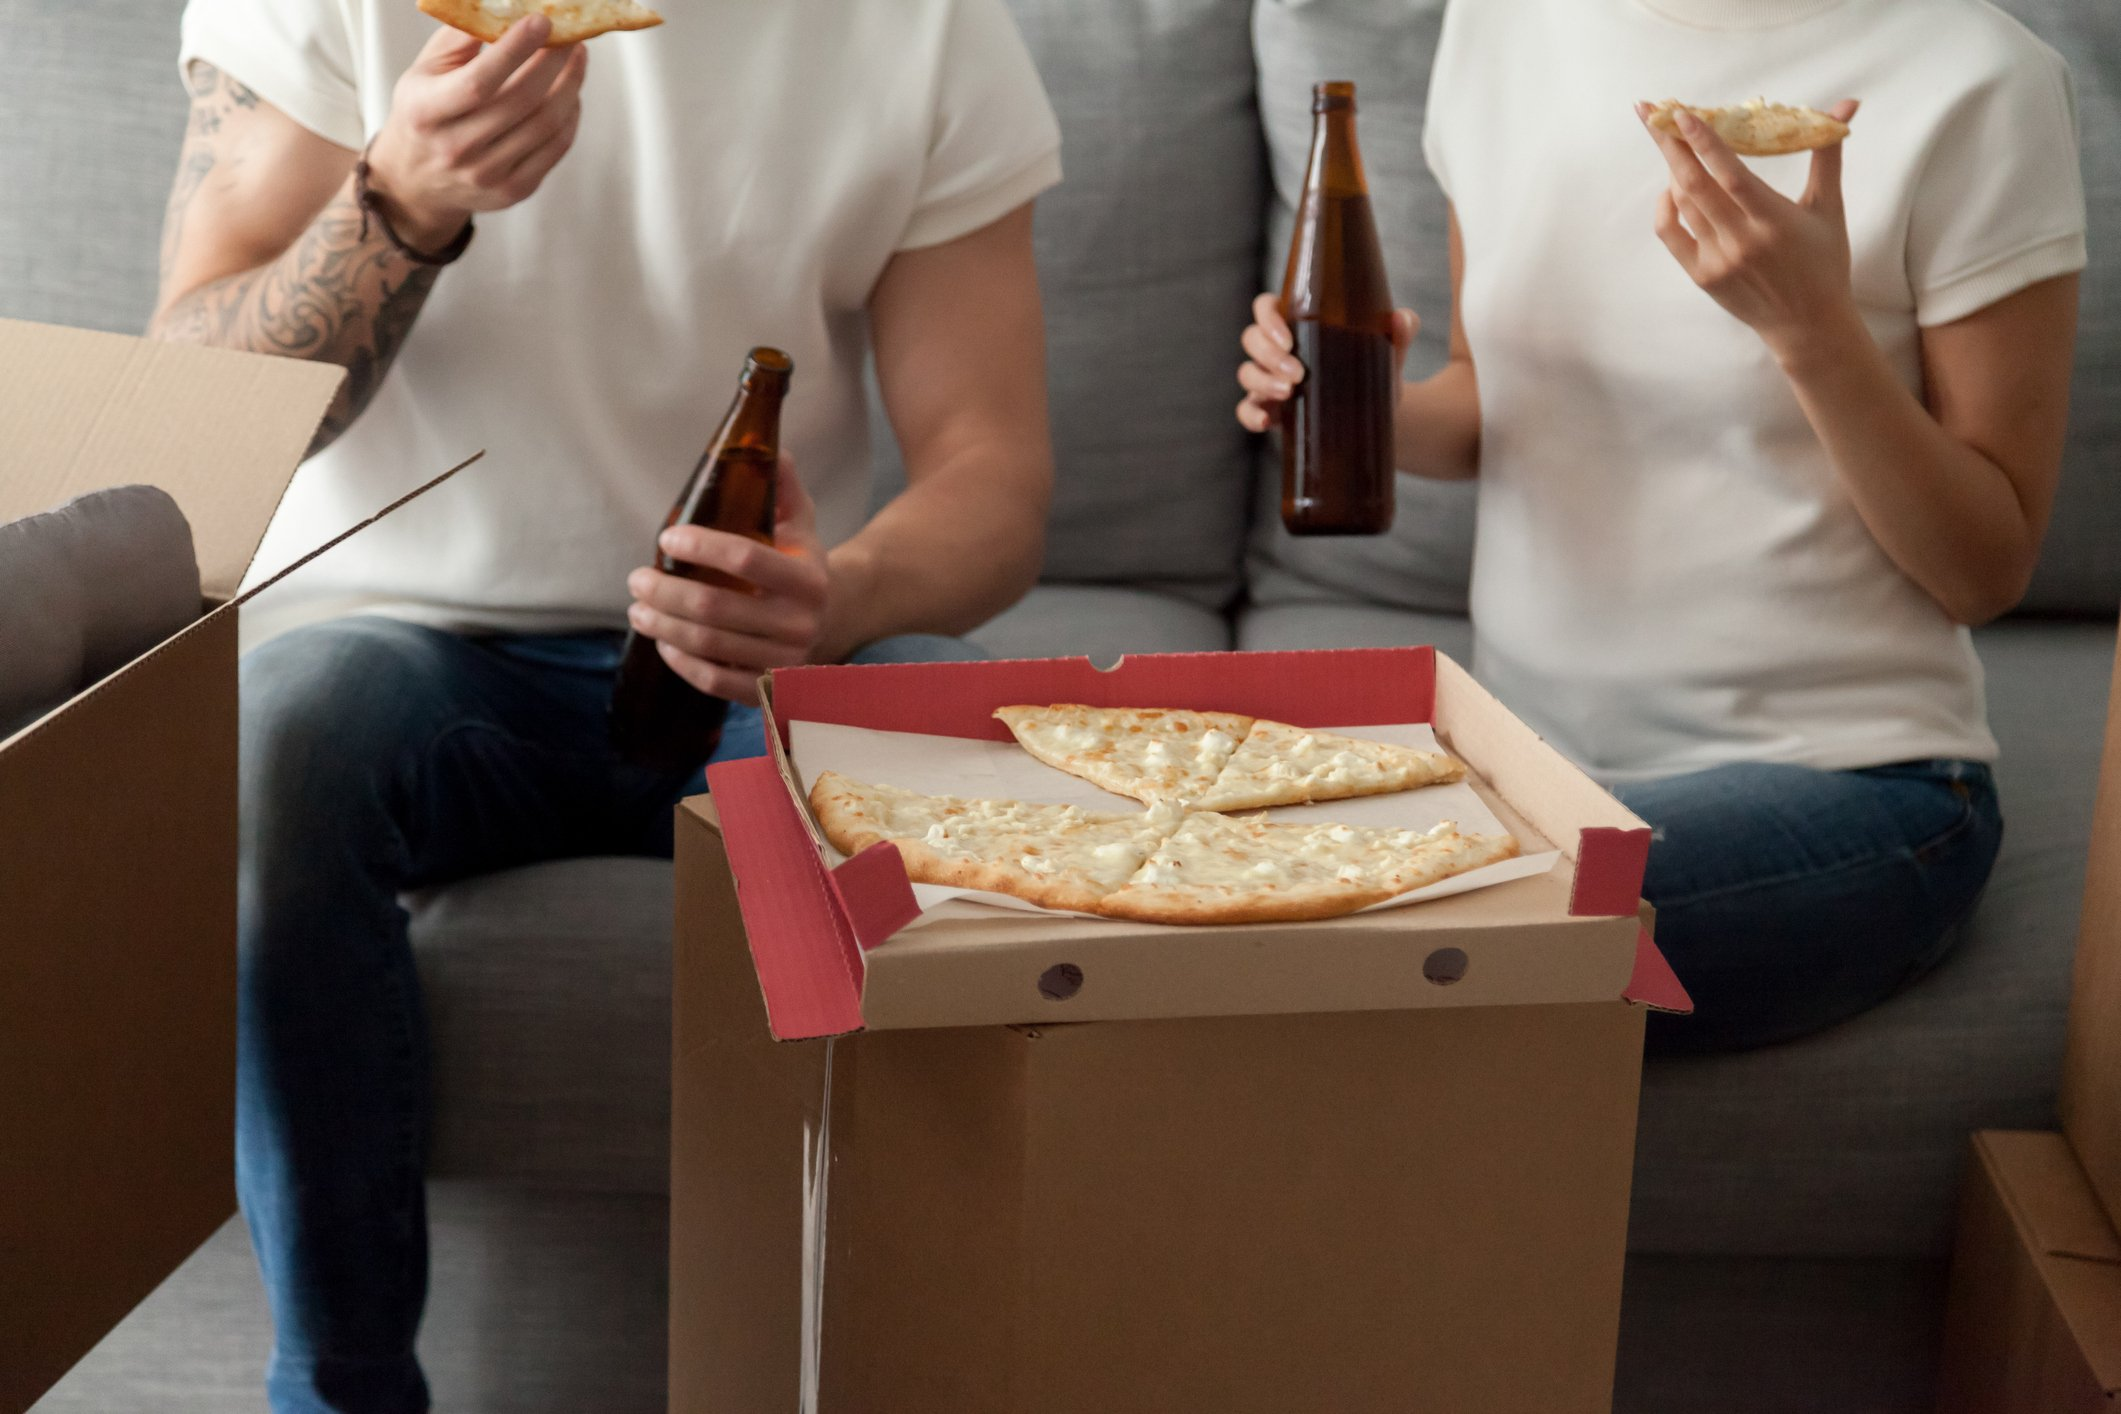 Student tenants eating pizza on a box